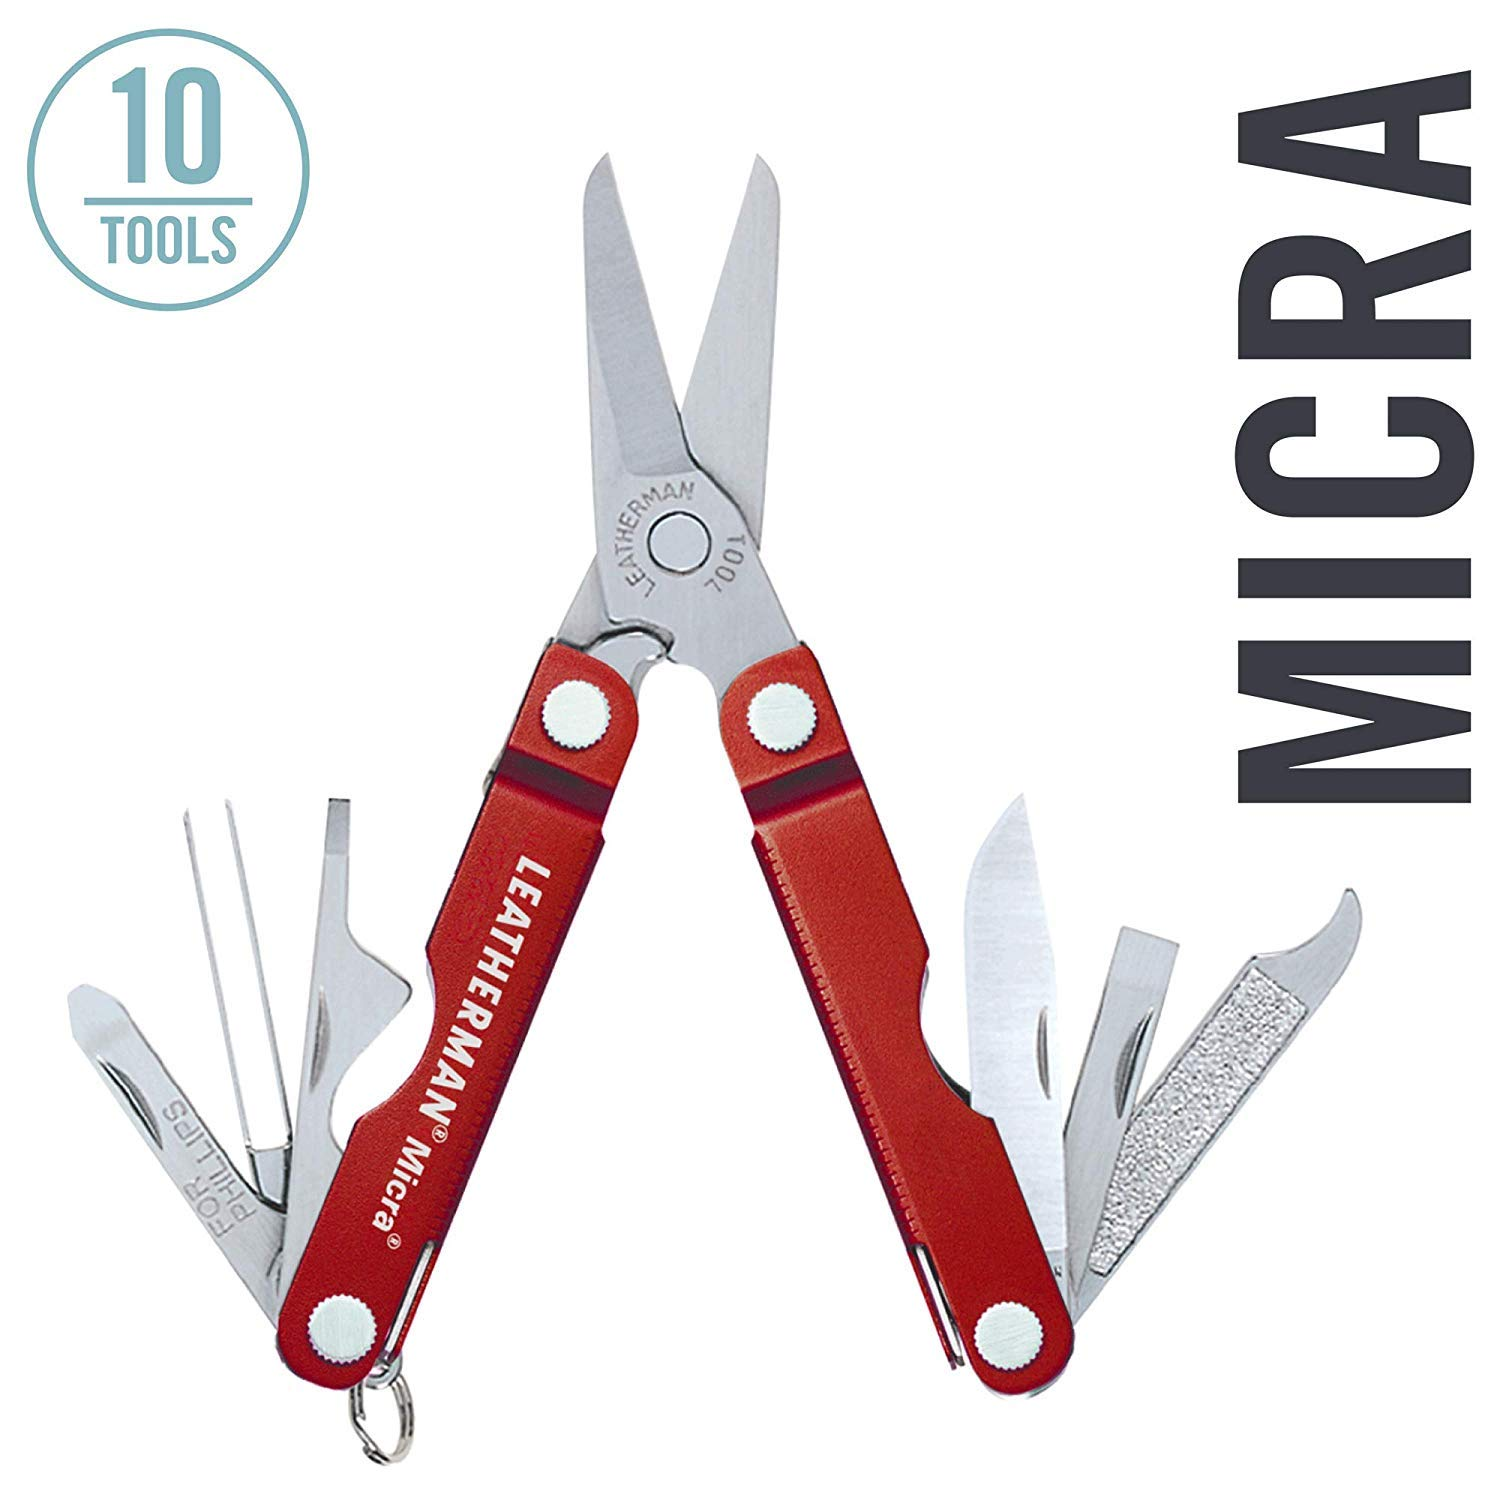 LEATHERMAN - Micra Keychain Multitool with Spring-Action Scissors and Grooming Tools, Stainless Steel, Red